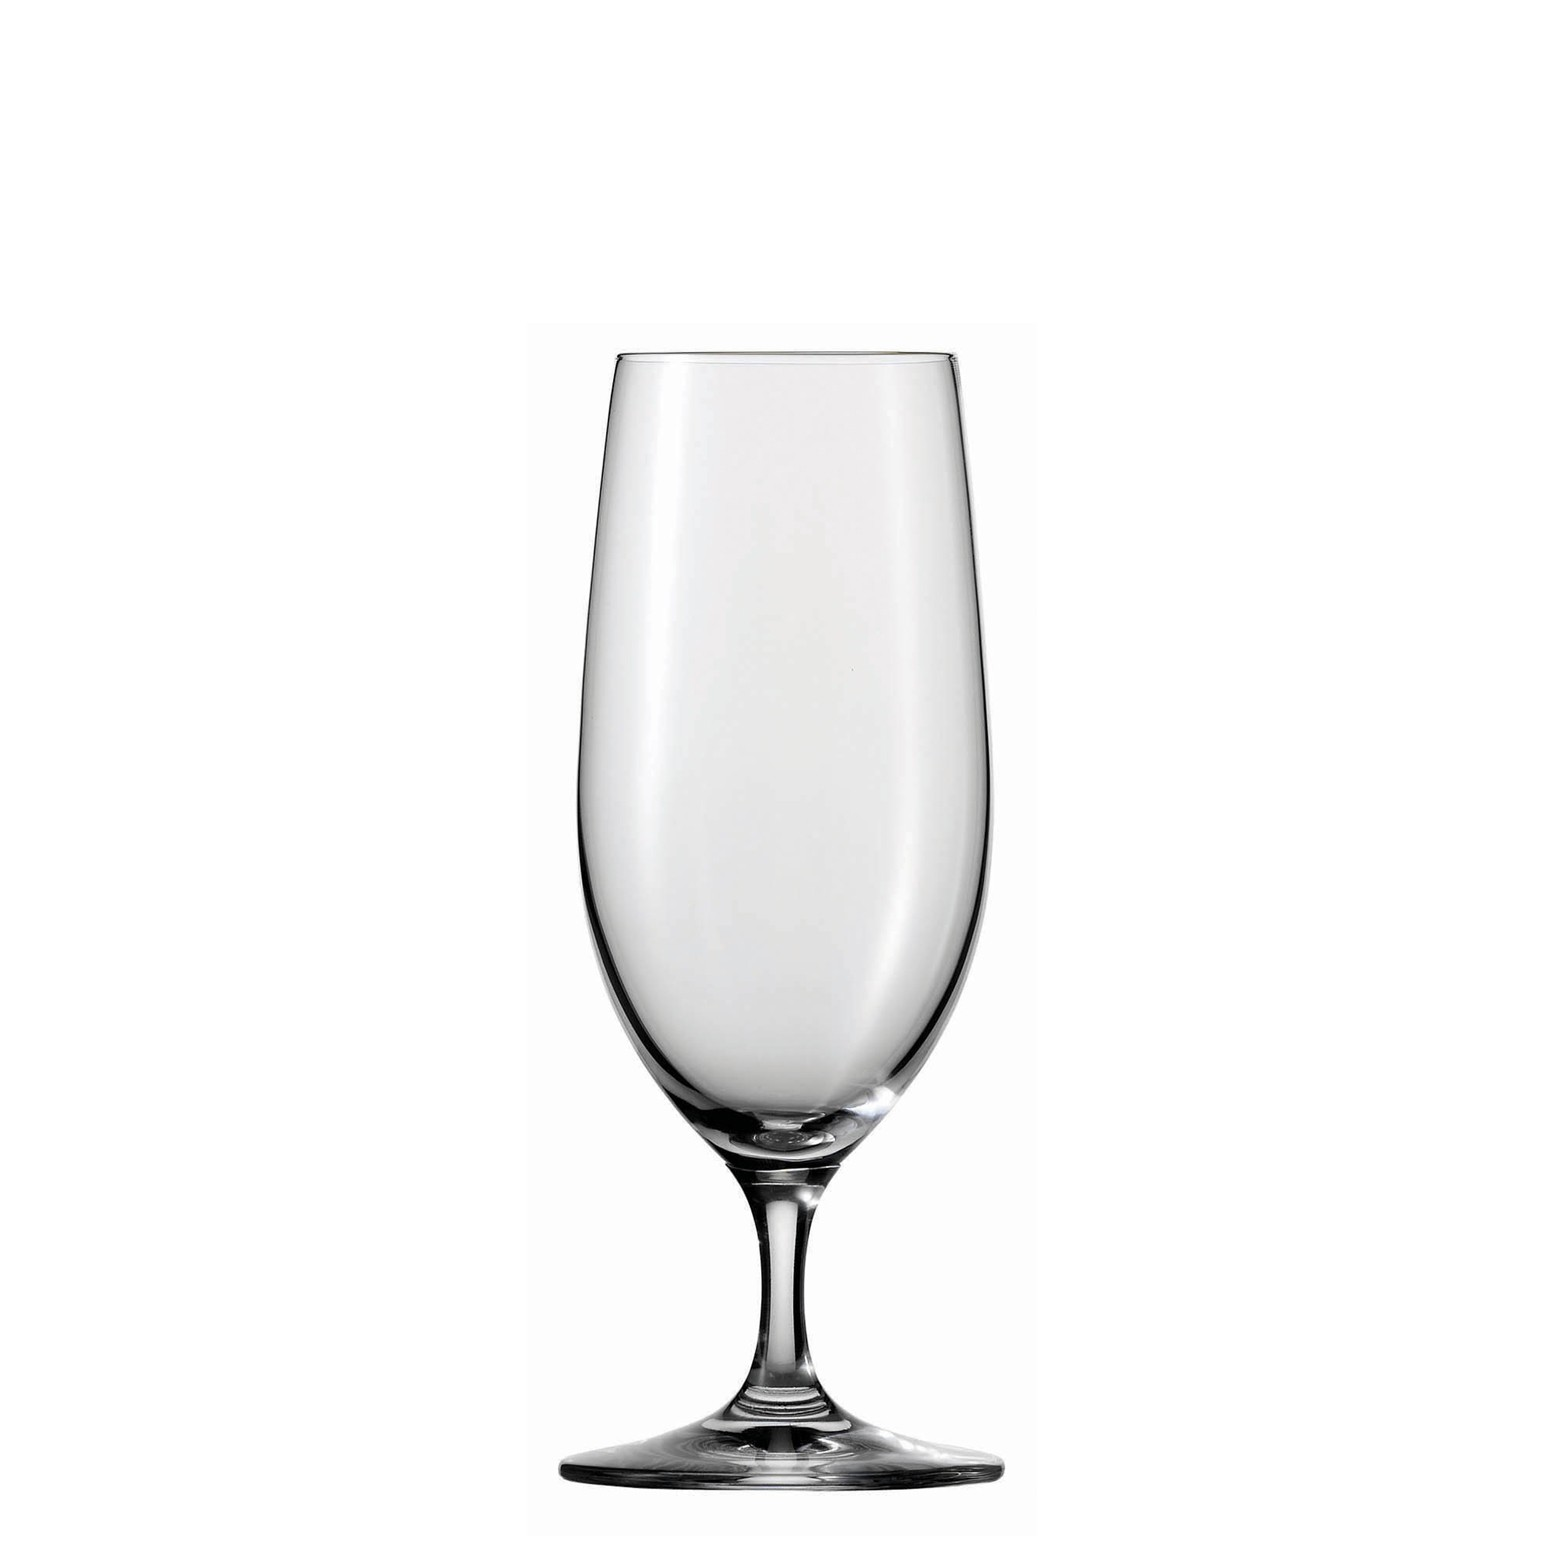 Schott Zwiesel Tritan Crystal, Classico All Purpose and Crystal Beer Glass, Single